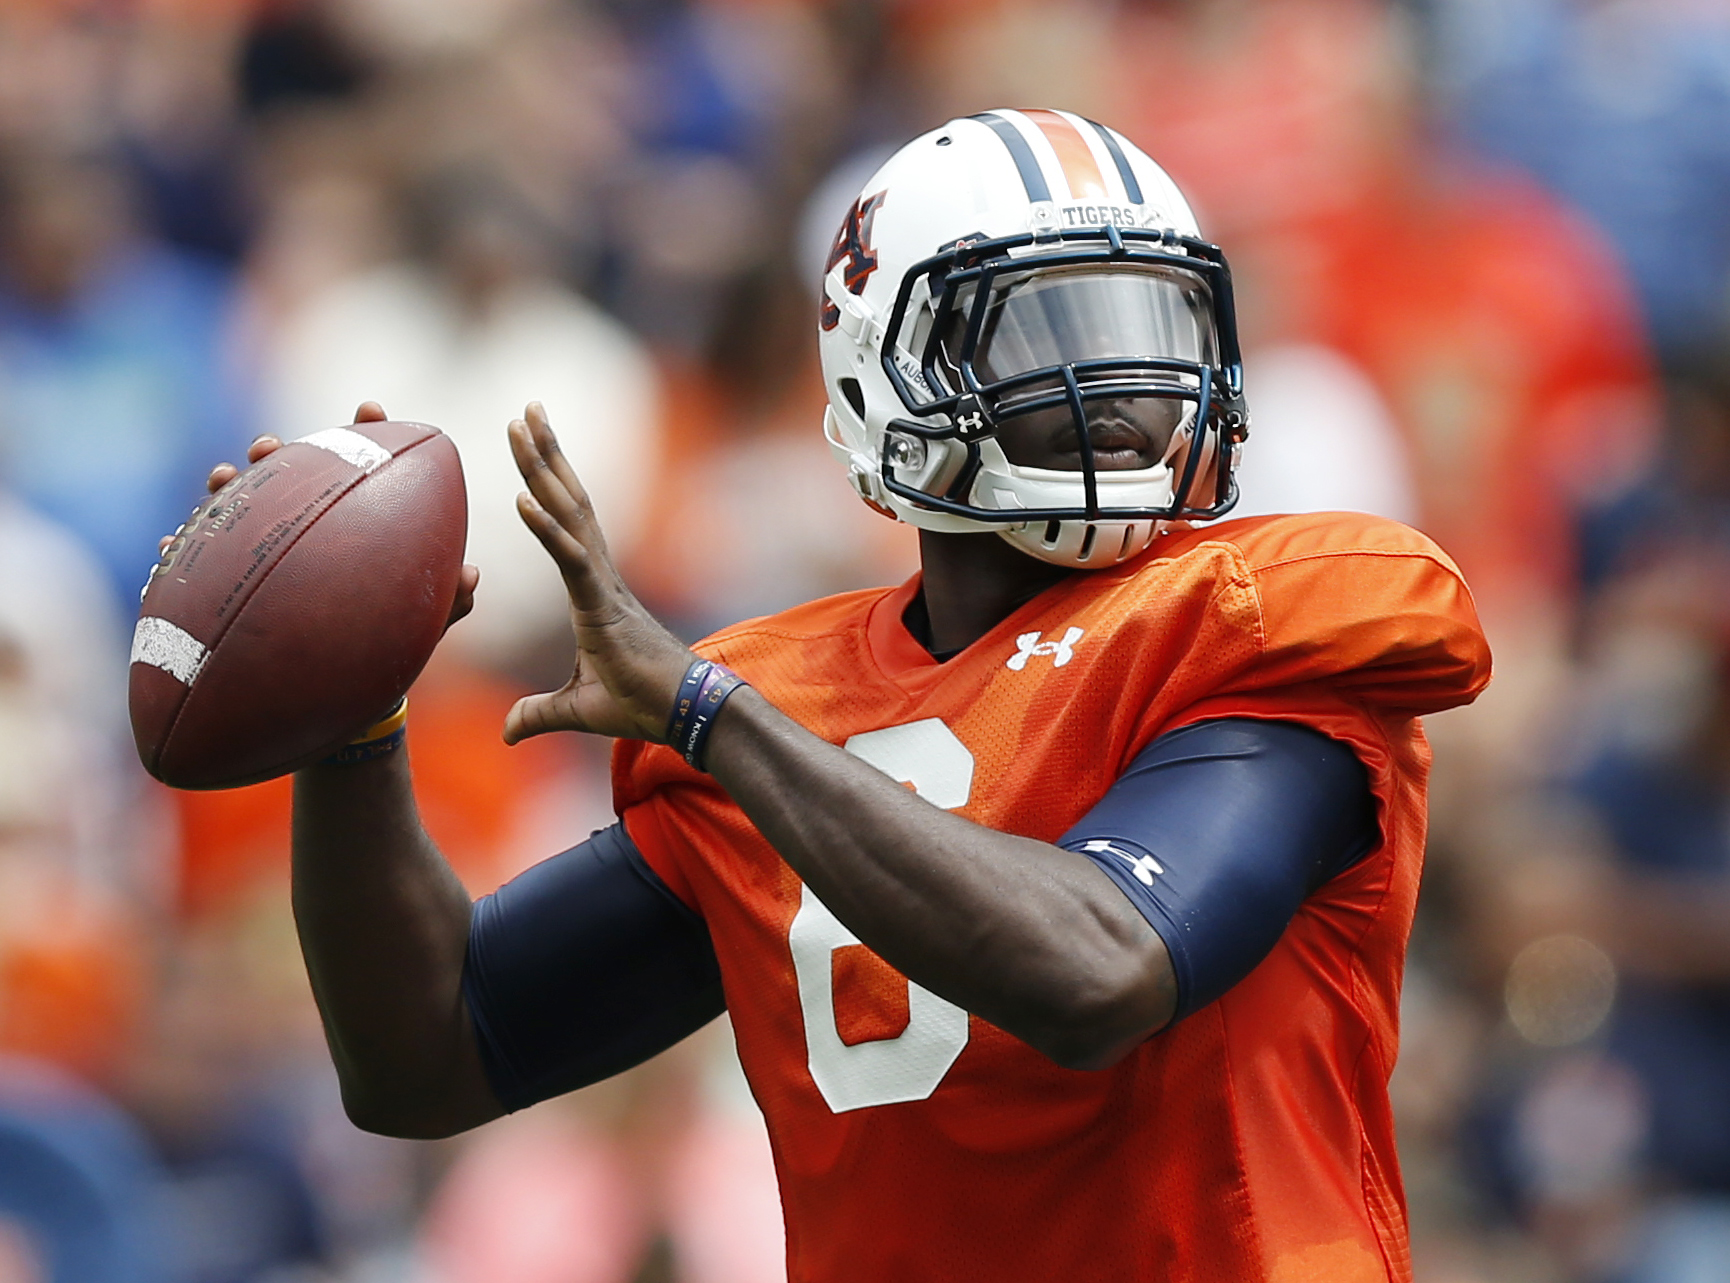 FILE - In this April 18, 2015, file photo, Auburn quarterback Jeremy Johnson (6) looks to pass during the first half of their spring NCAA college football game in Auburn, Ala. Auburn constructed a formidable ground game on quarterback runs and seemingly t